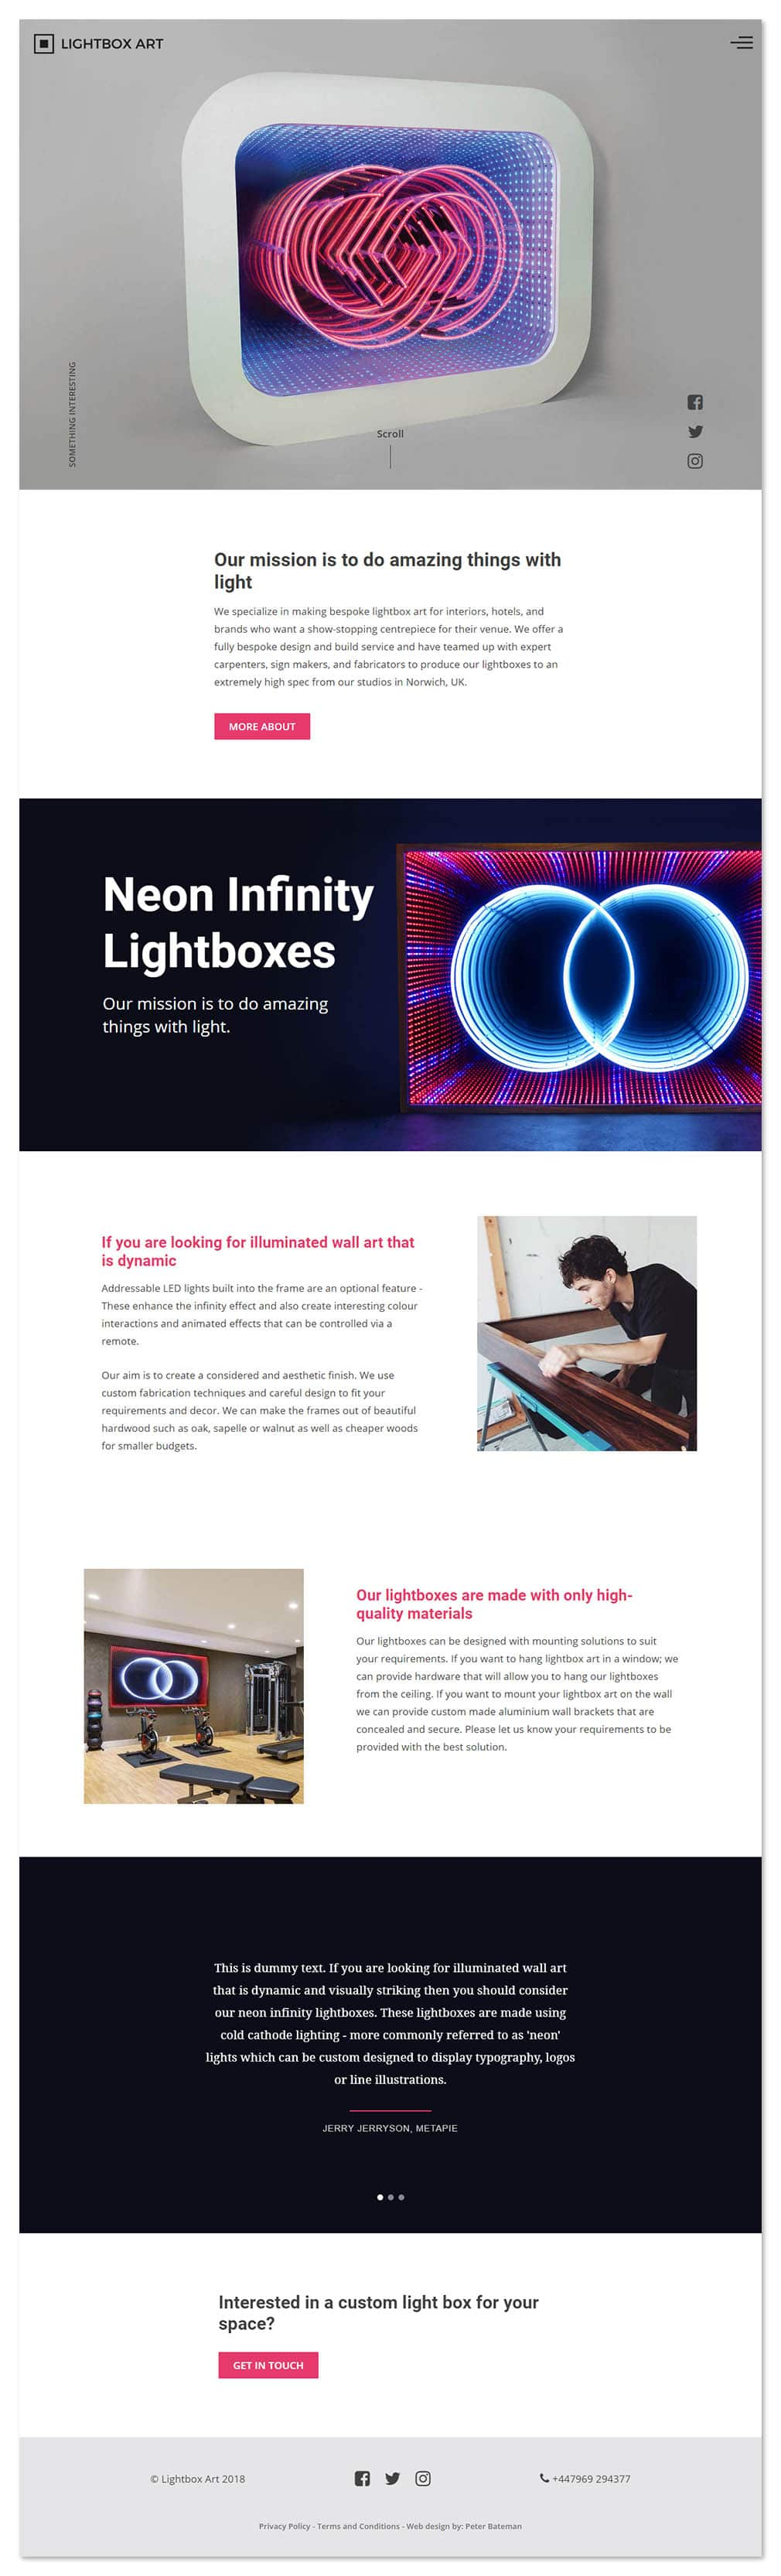 Lightbox Art homepage web design